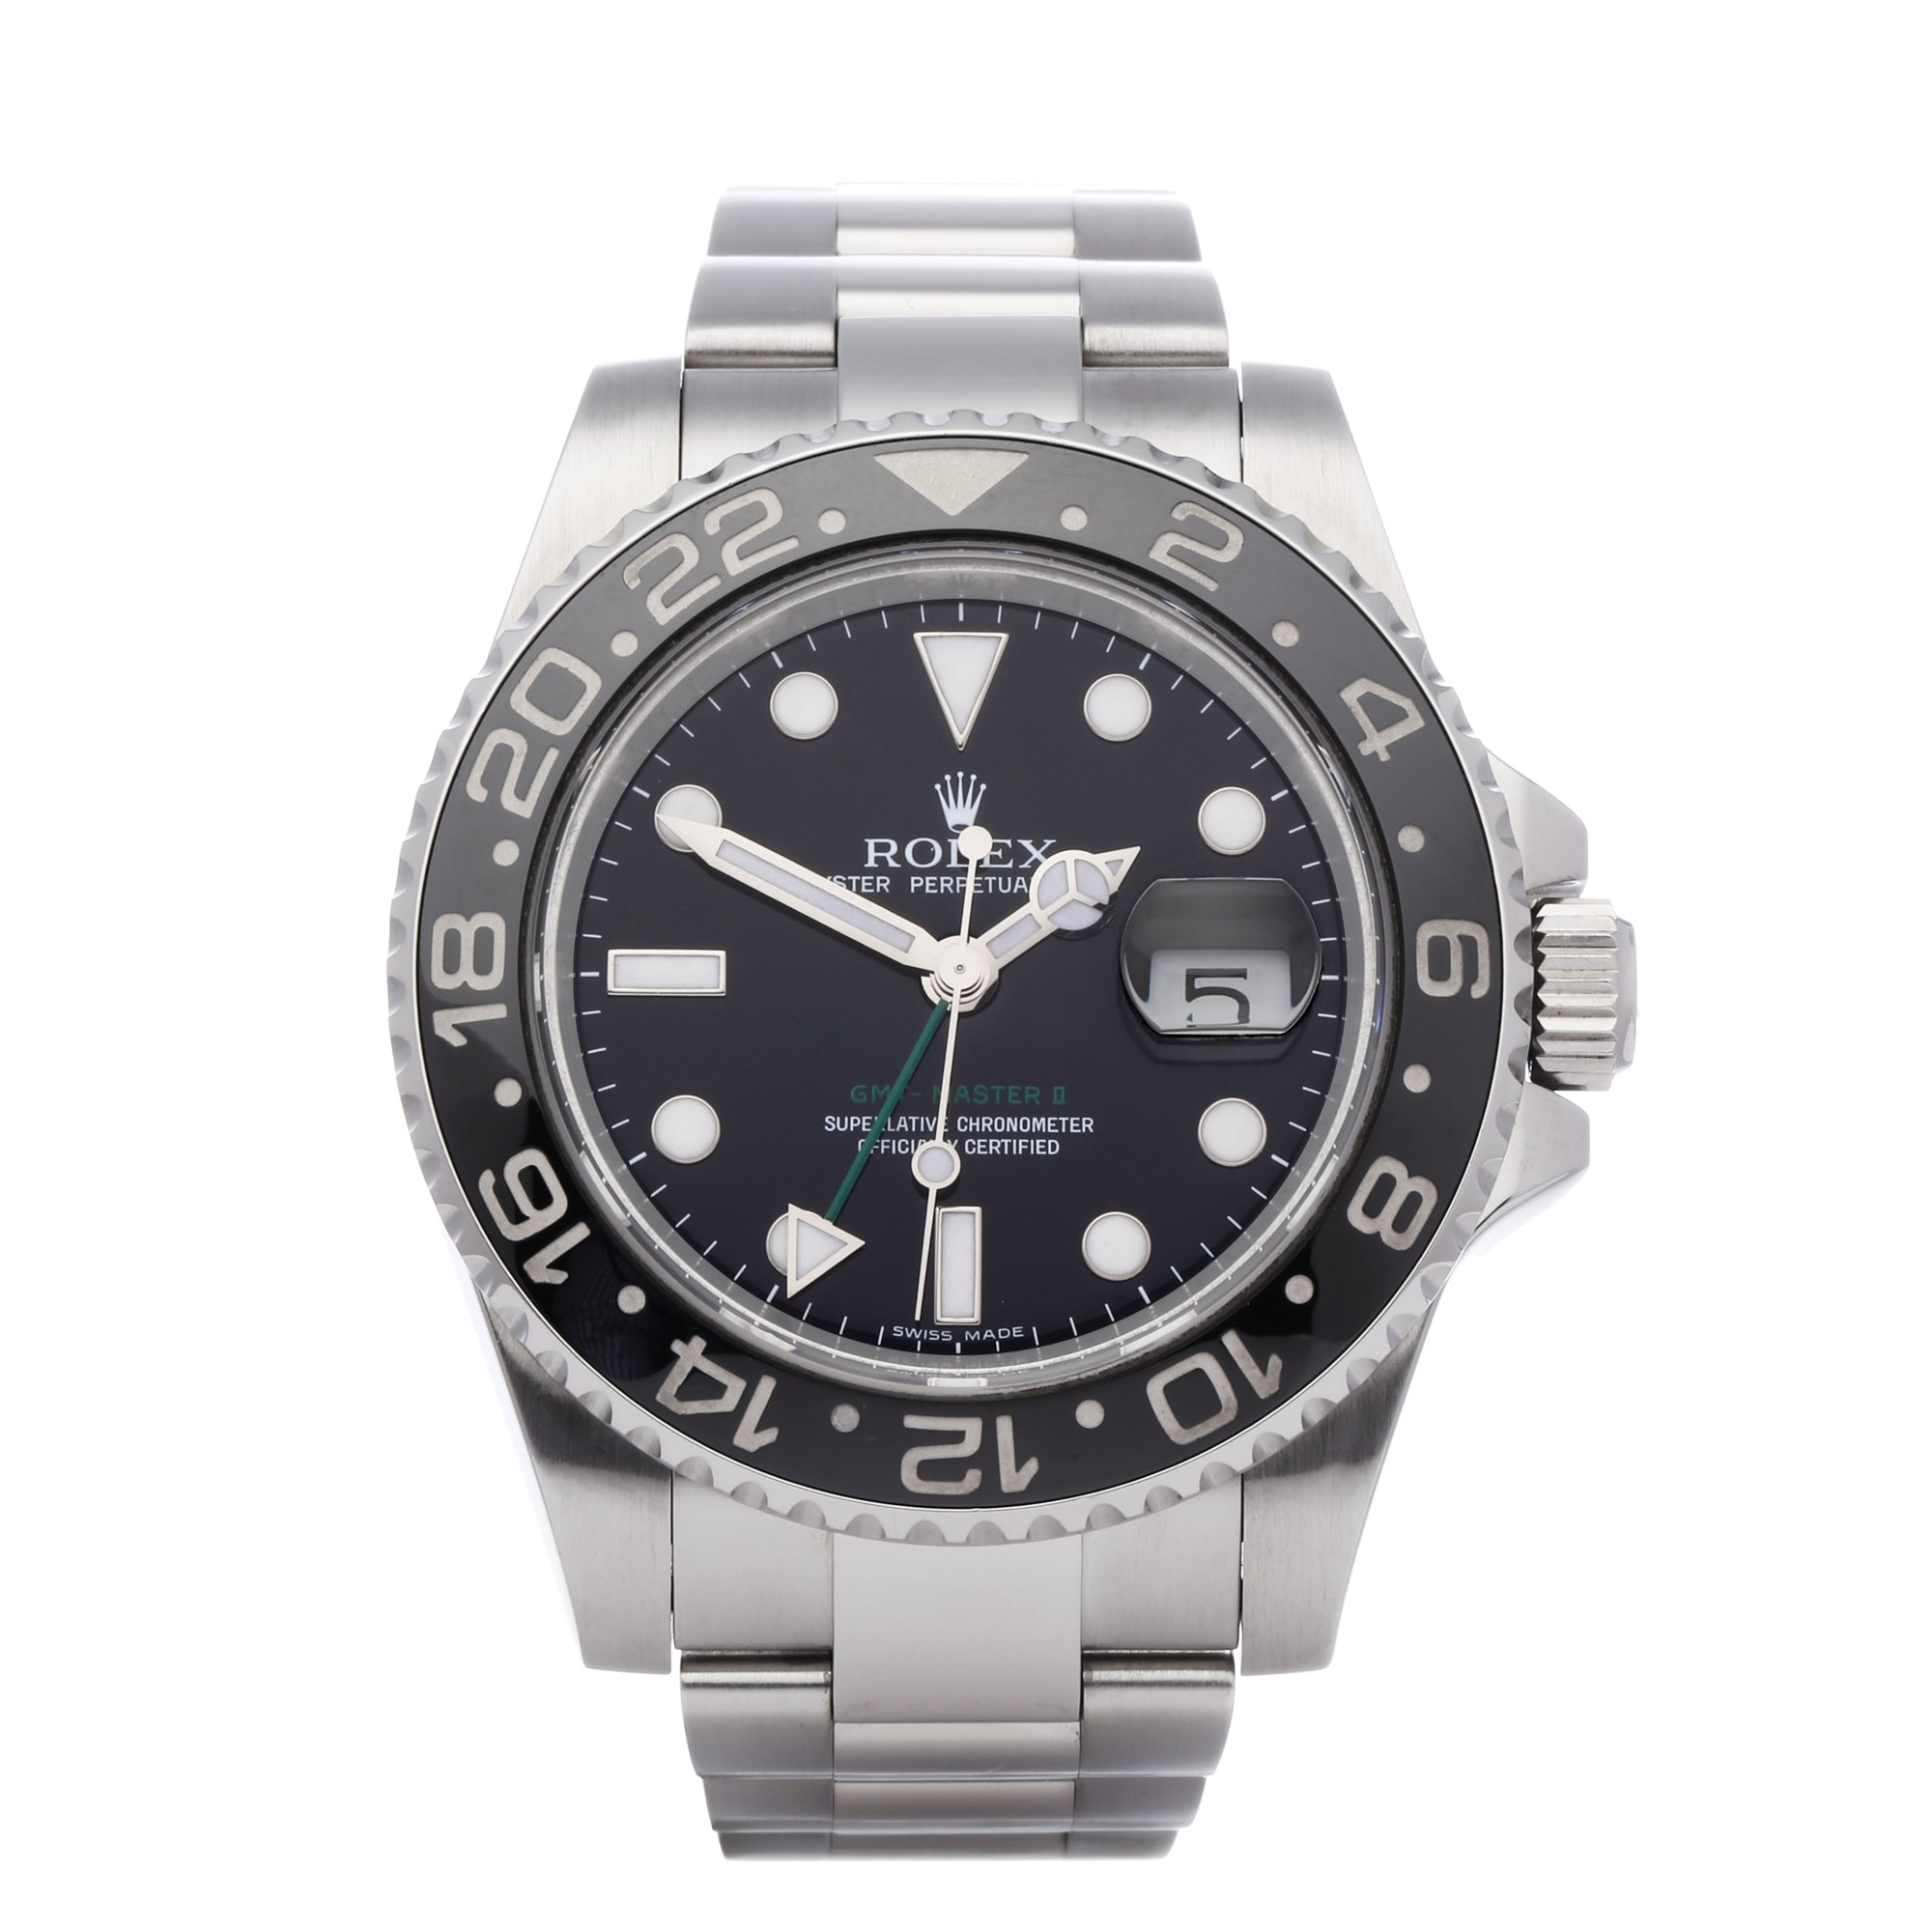 Rolex GMT-Master II Date Stainless Steel 116710LN